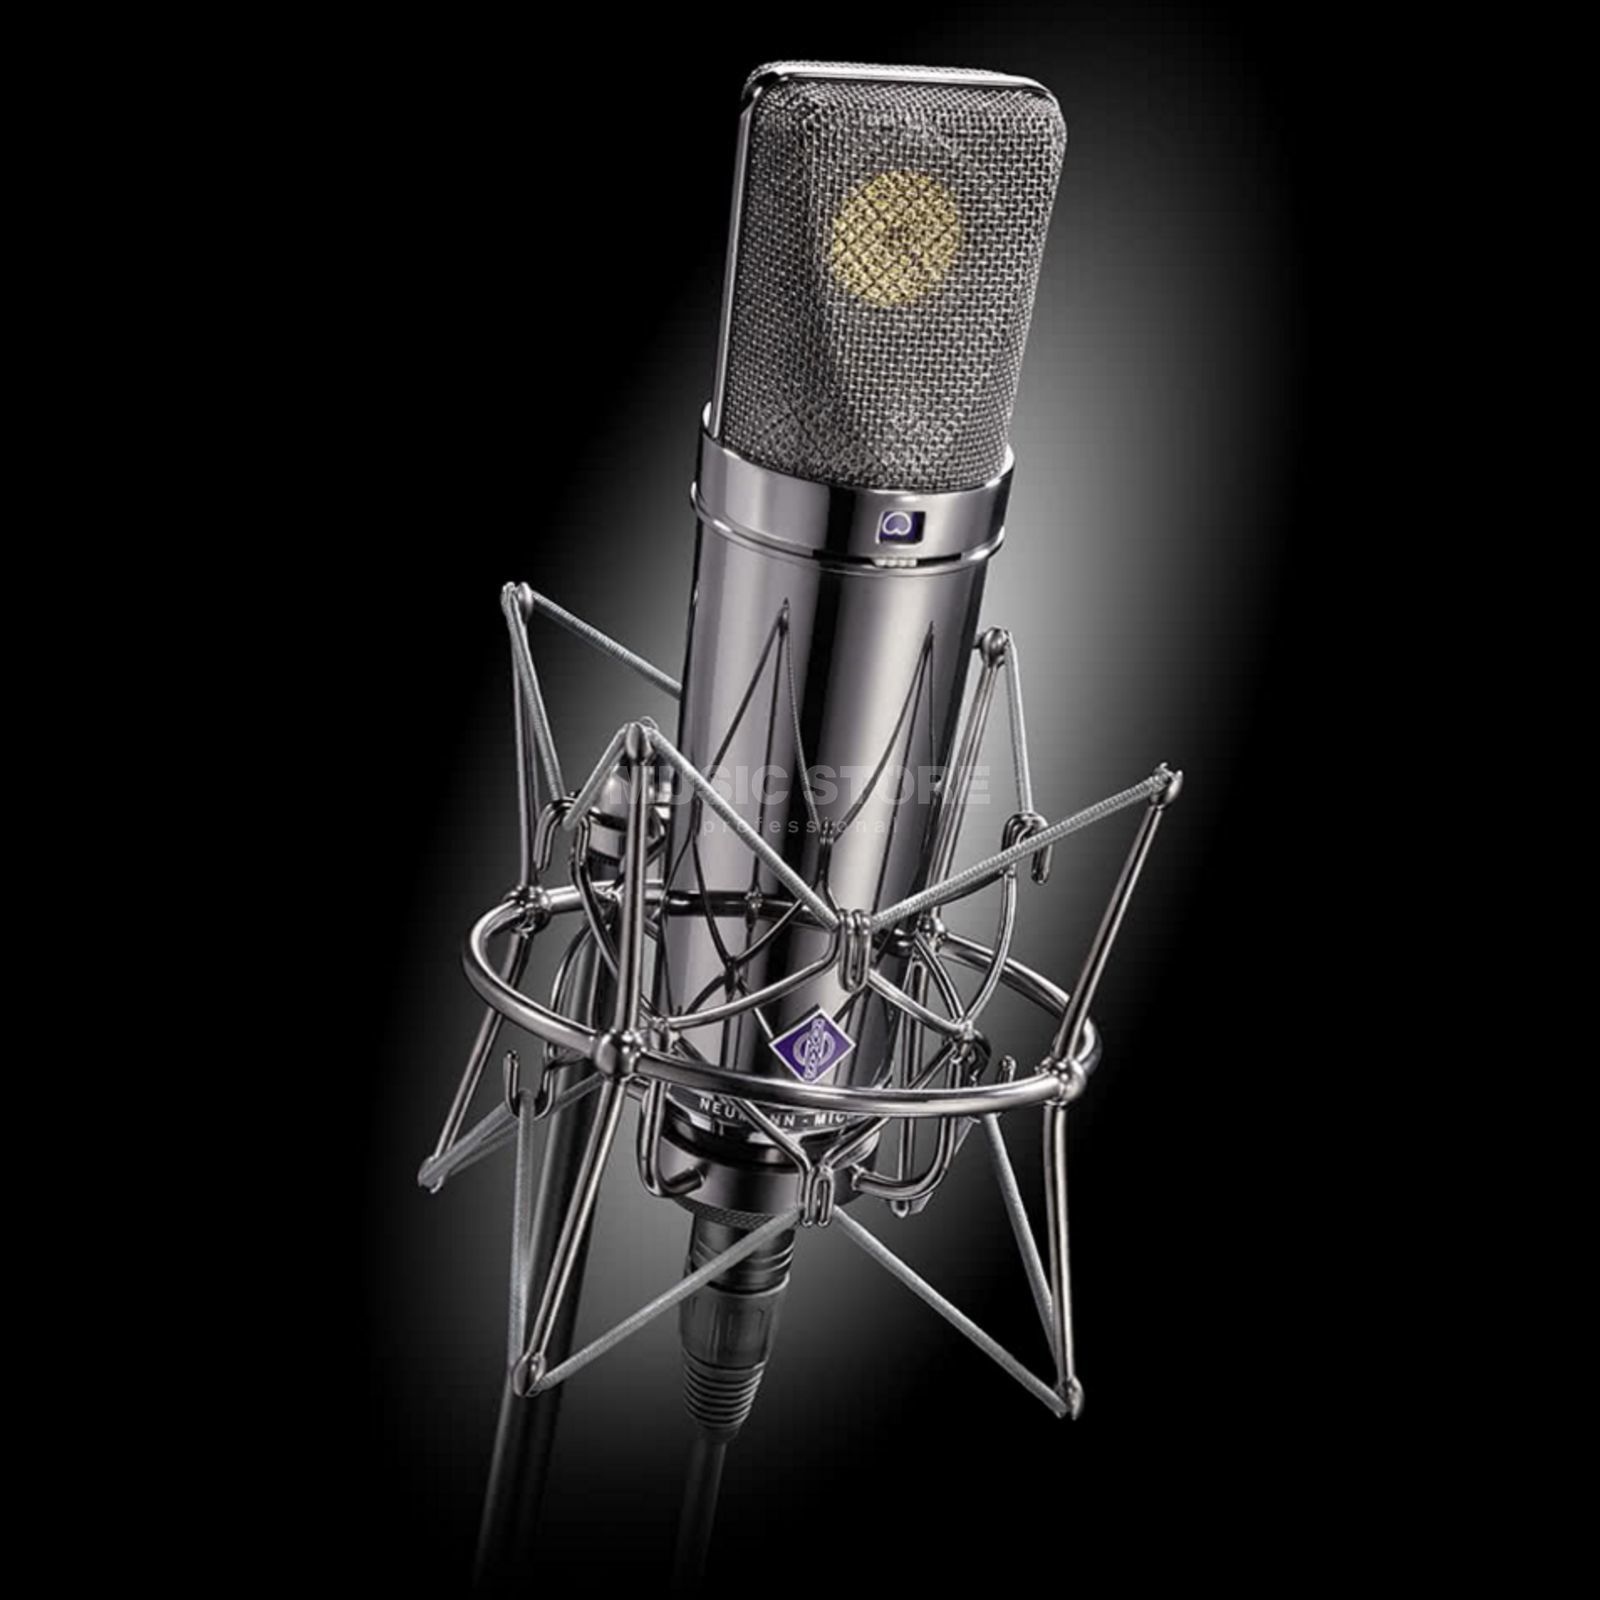 Neumann U 87 Rhodium Edition Set Product Image